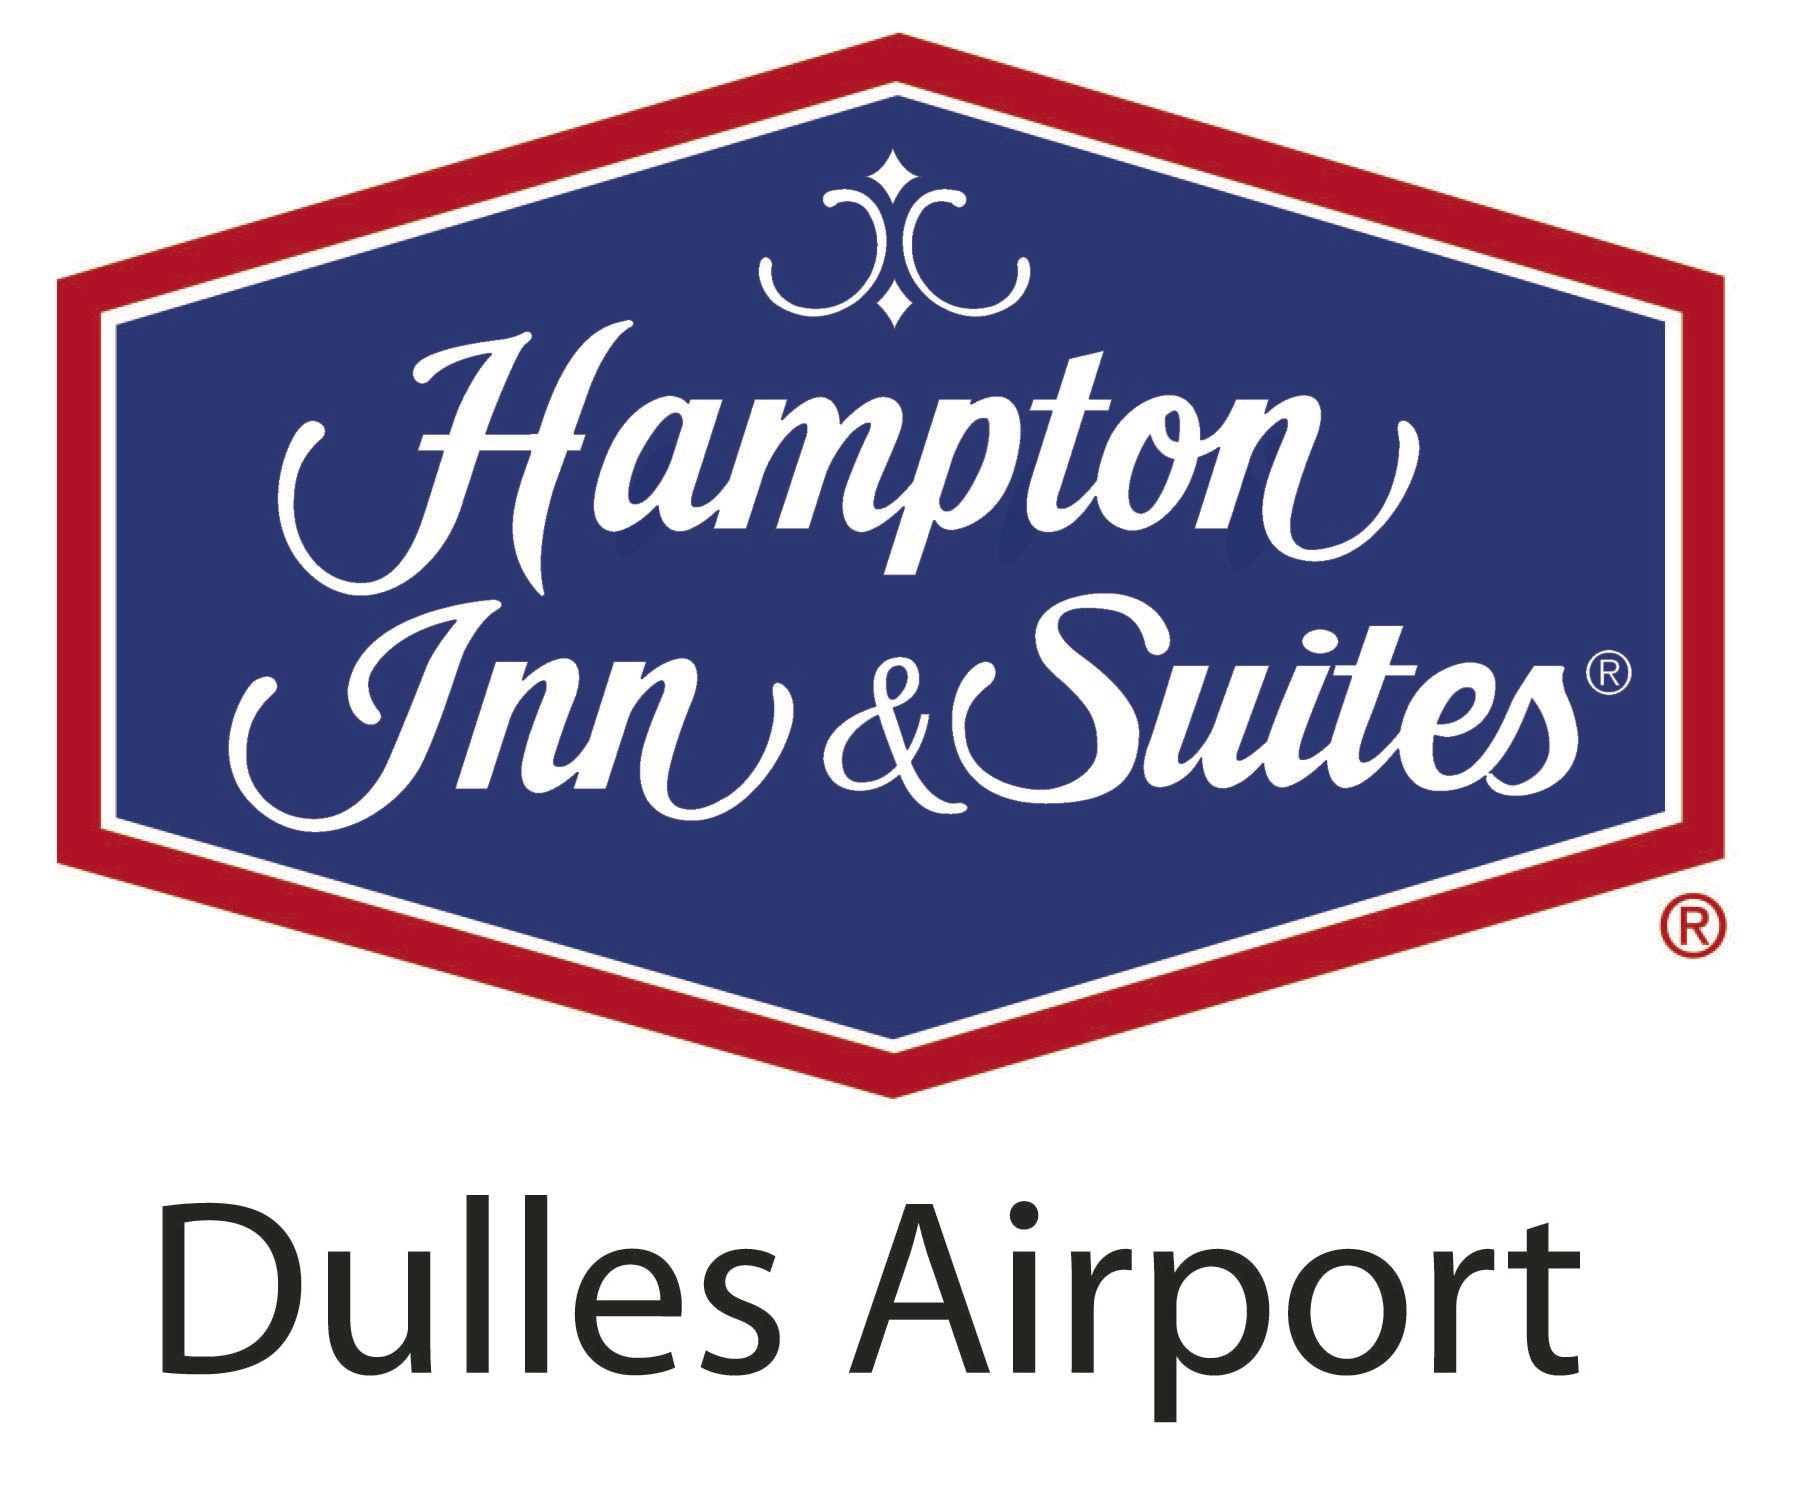 Hampton inn coupons or discounts